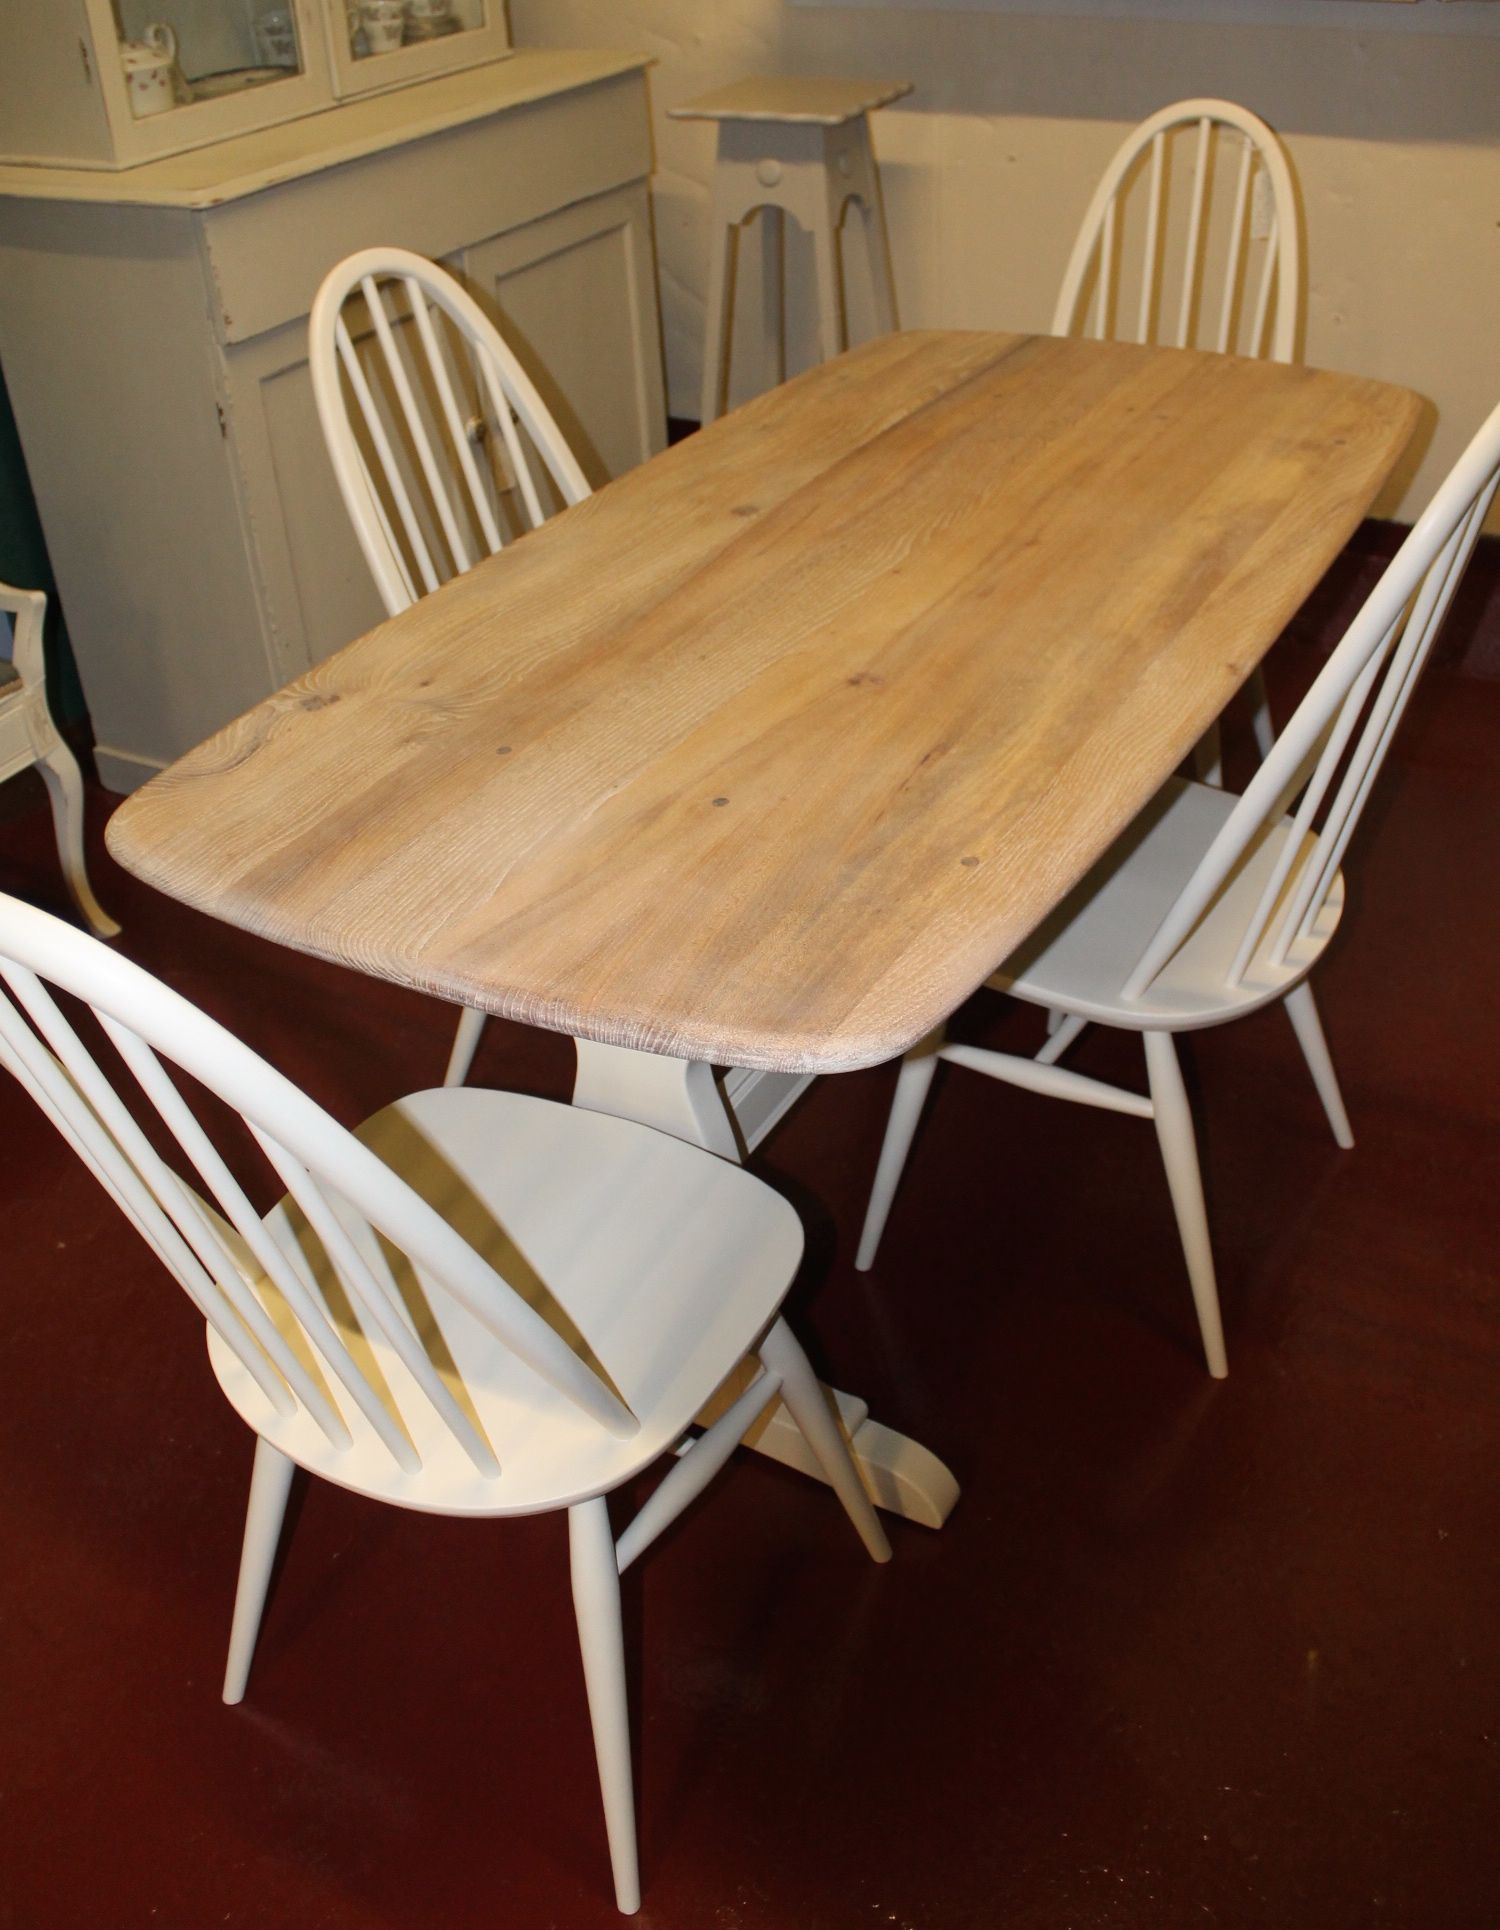 Ercol Dining Table and Four Chairs £365 00 Ercol